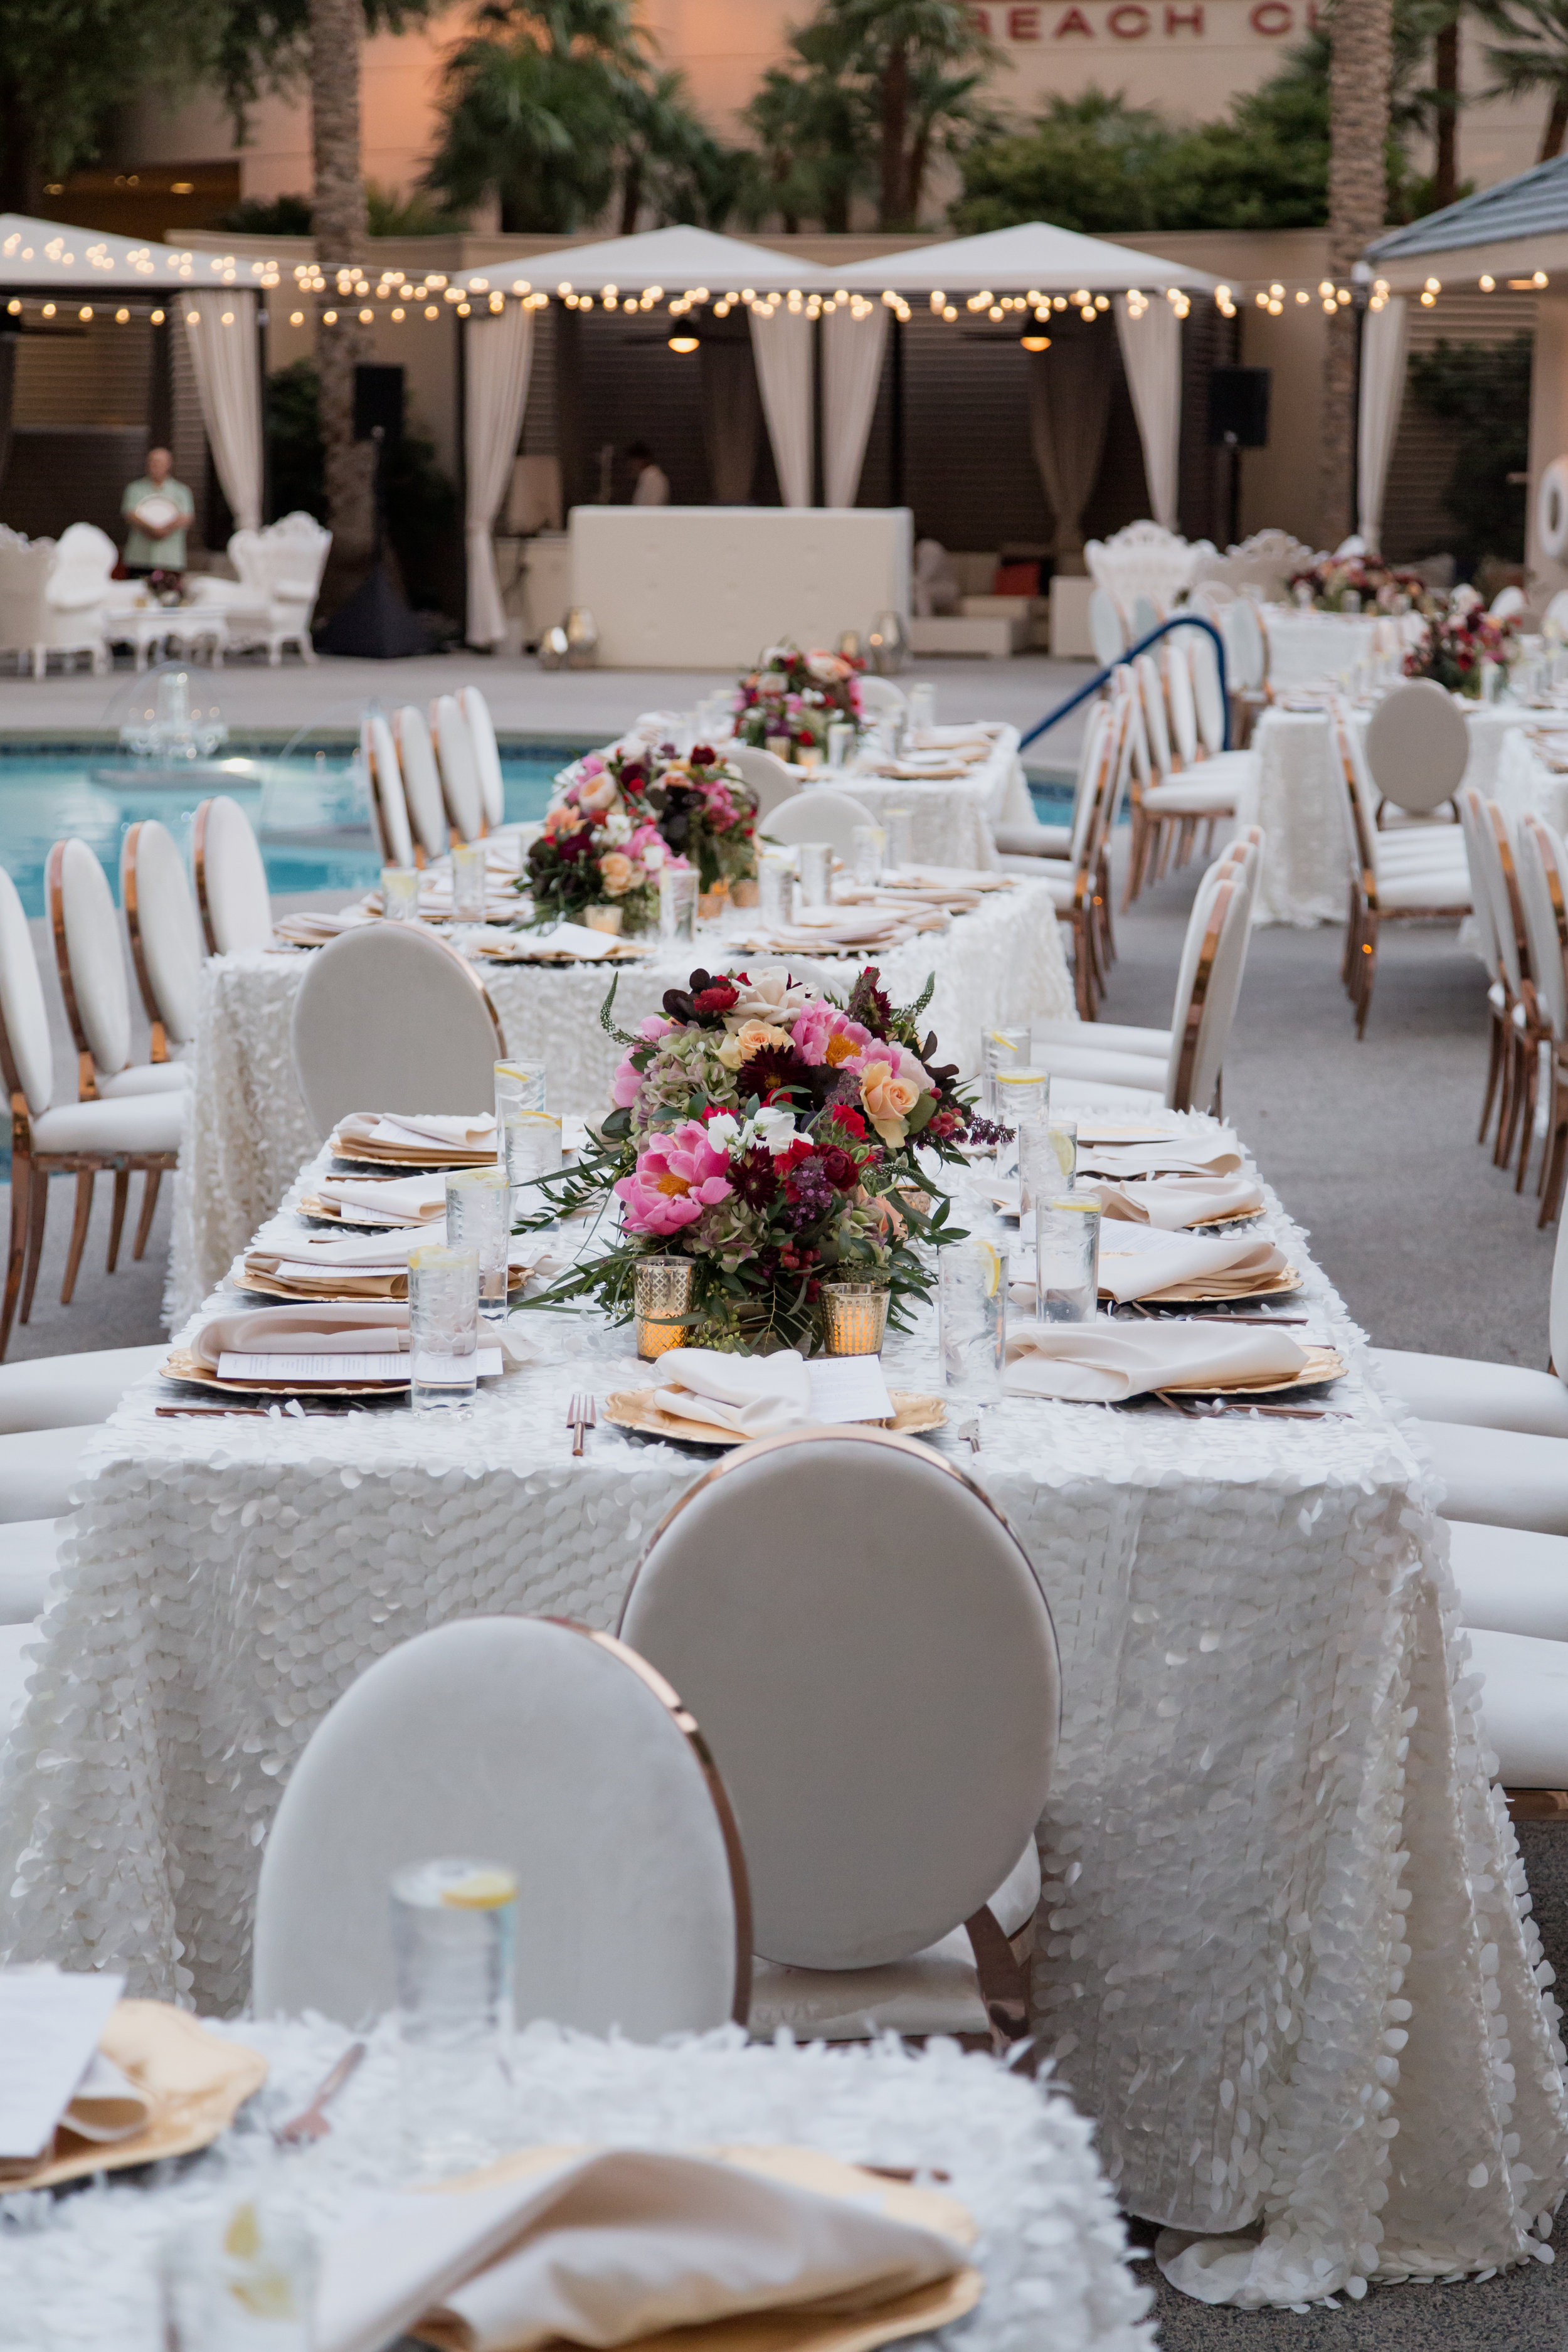 White and jewel toned pool side wedding.Destination Wedding Planner  Andrea Eppolito ·Photos by  Adam Frazier Photography ·Floral and Decor by  Destinations by Design · Lighting by  LED Unplugged ·Venue · Invitations  Ceci New York  · Menus by  Alligator Soup